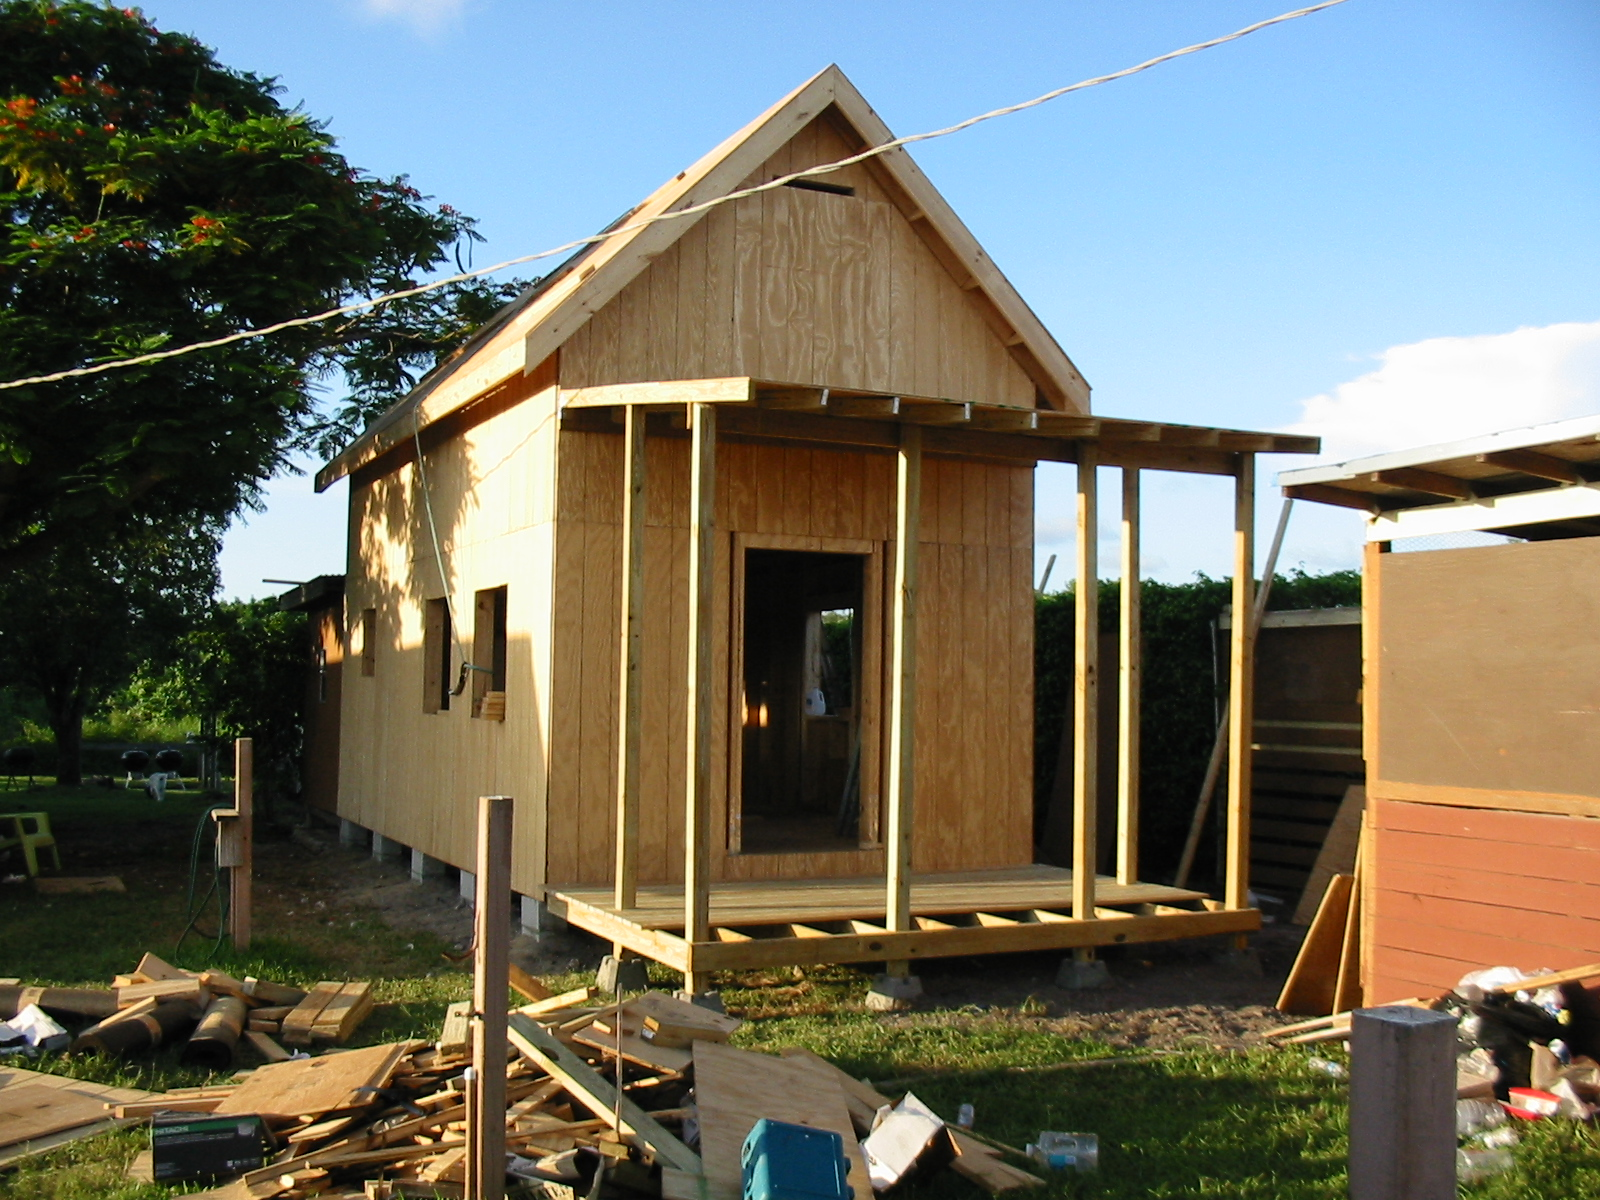 Tiny Home Plans Designs: Keith Is Building The 12×24 Homesteader's Cabin